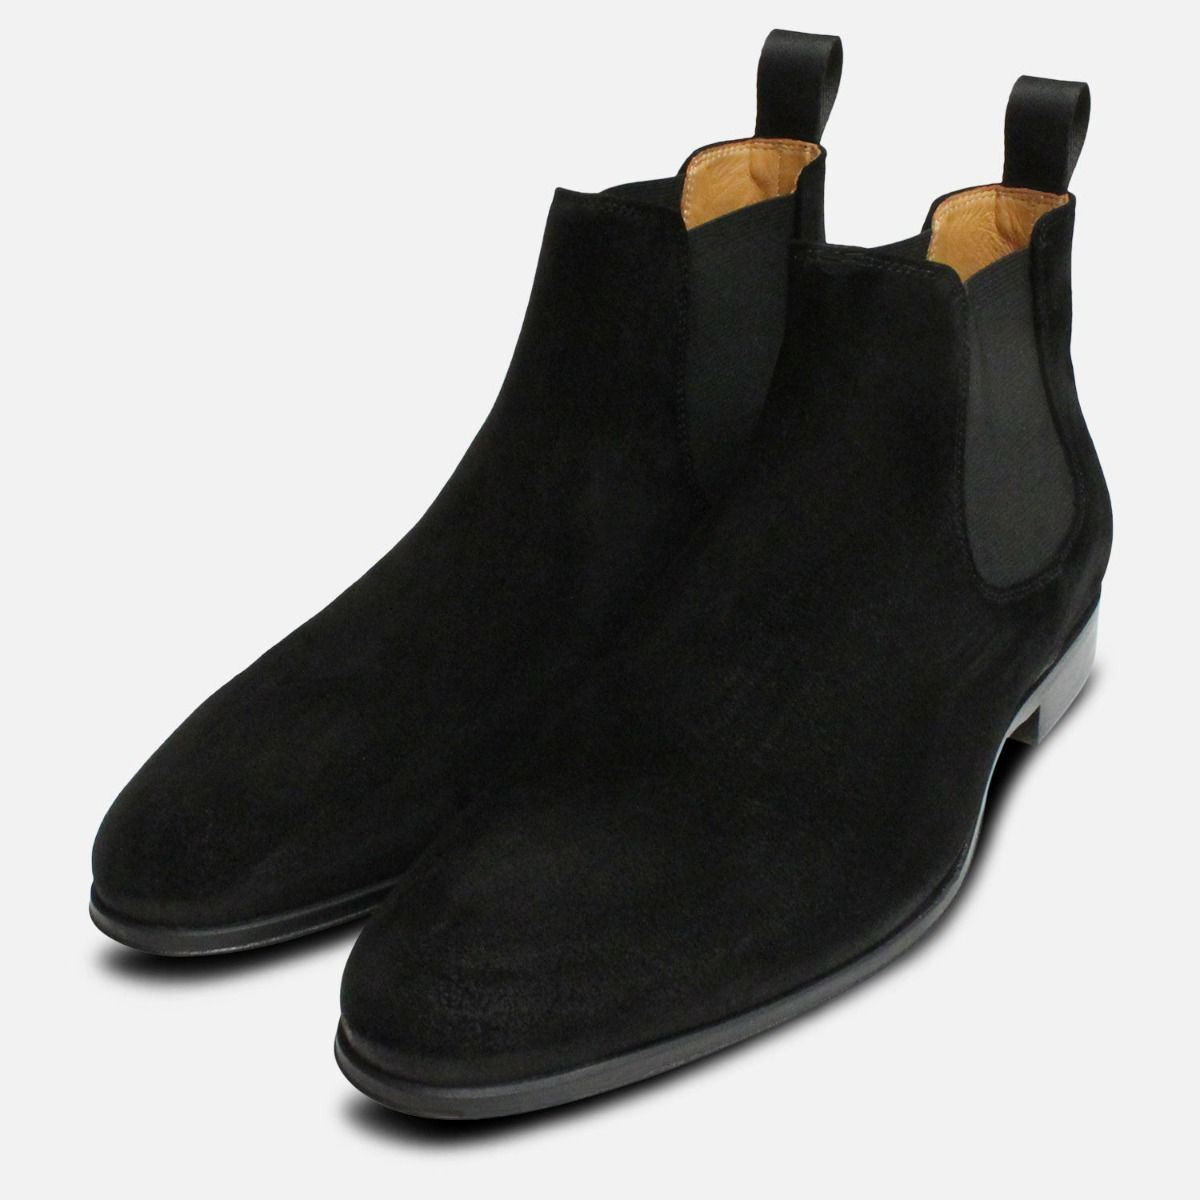 Beatle Boots in Black Suede for Men by